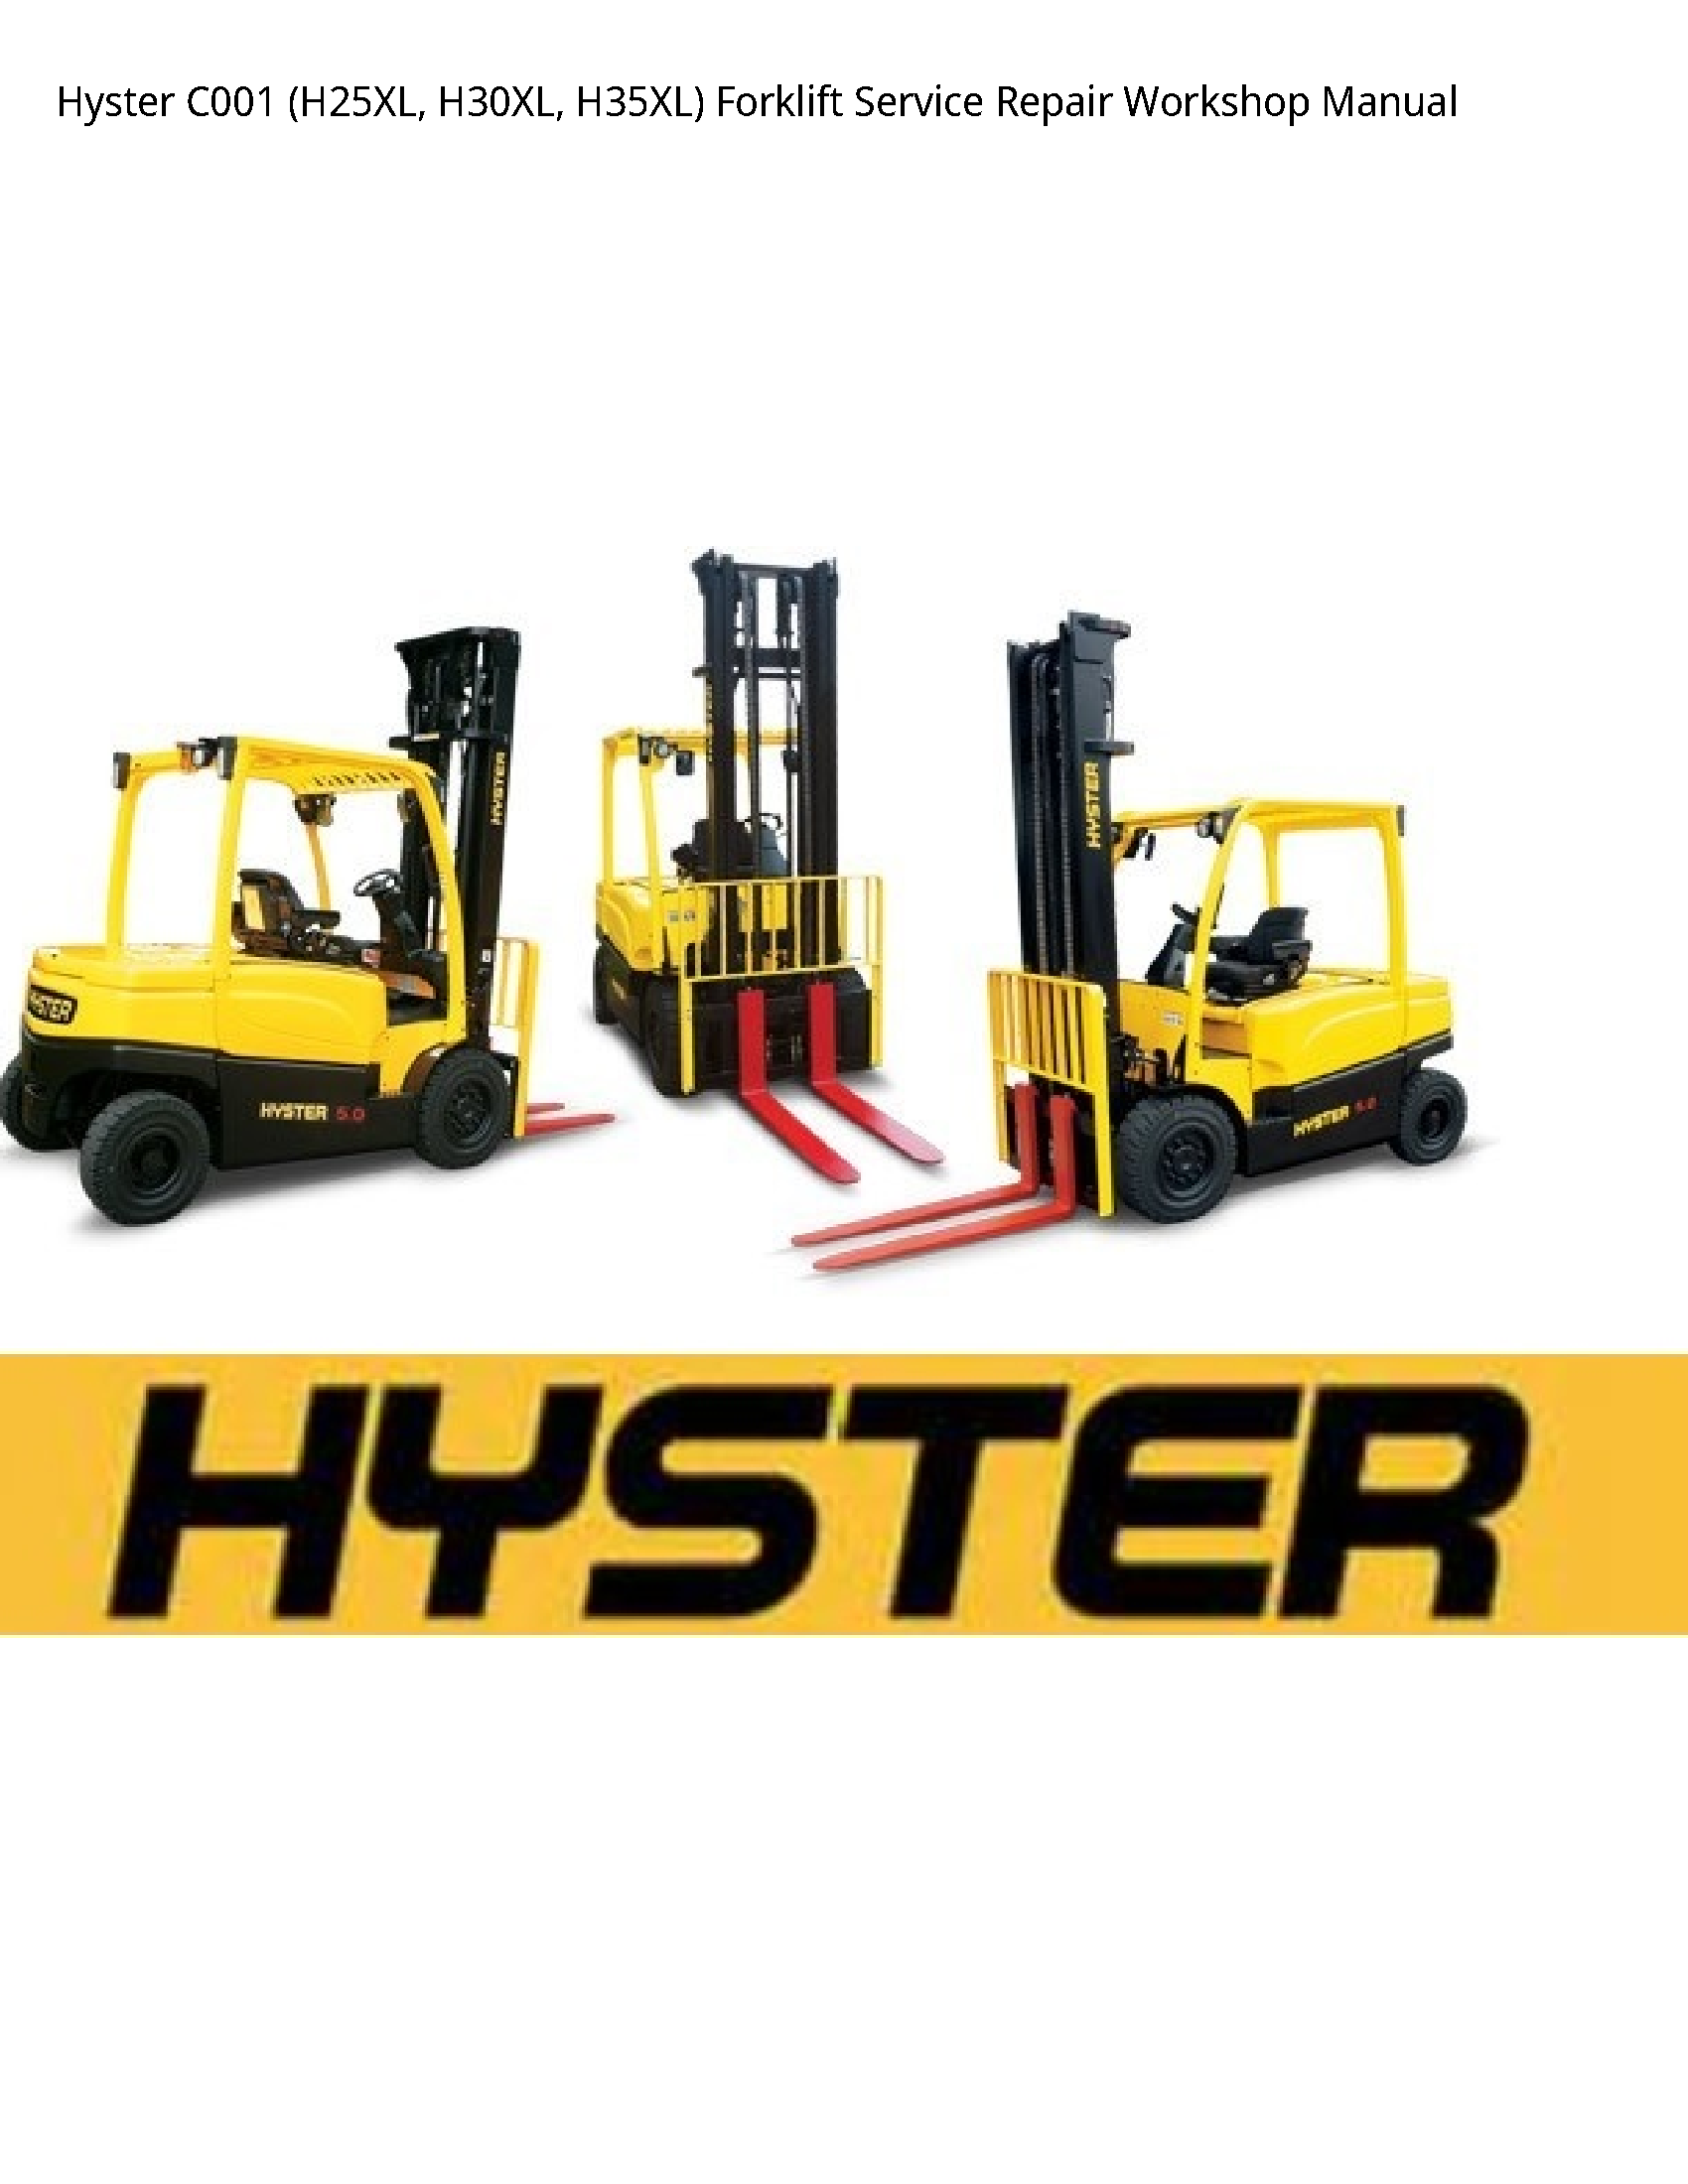 Hyster C001 Forklift manual